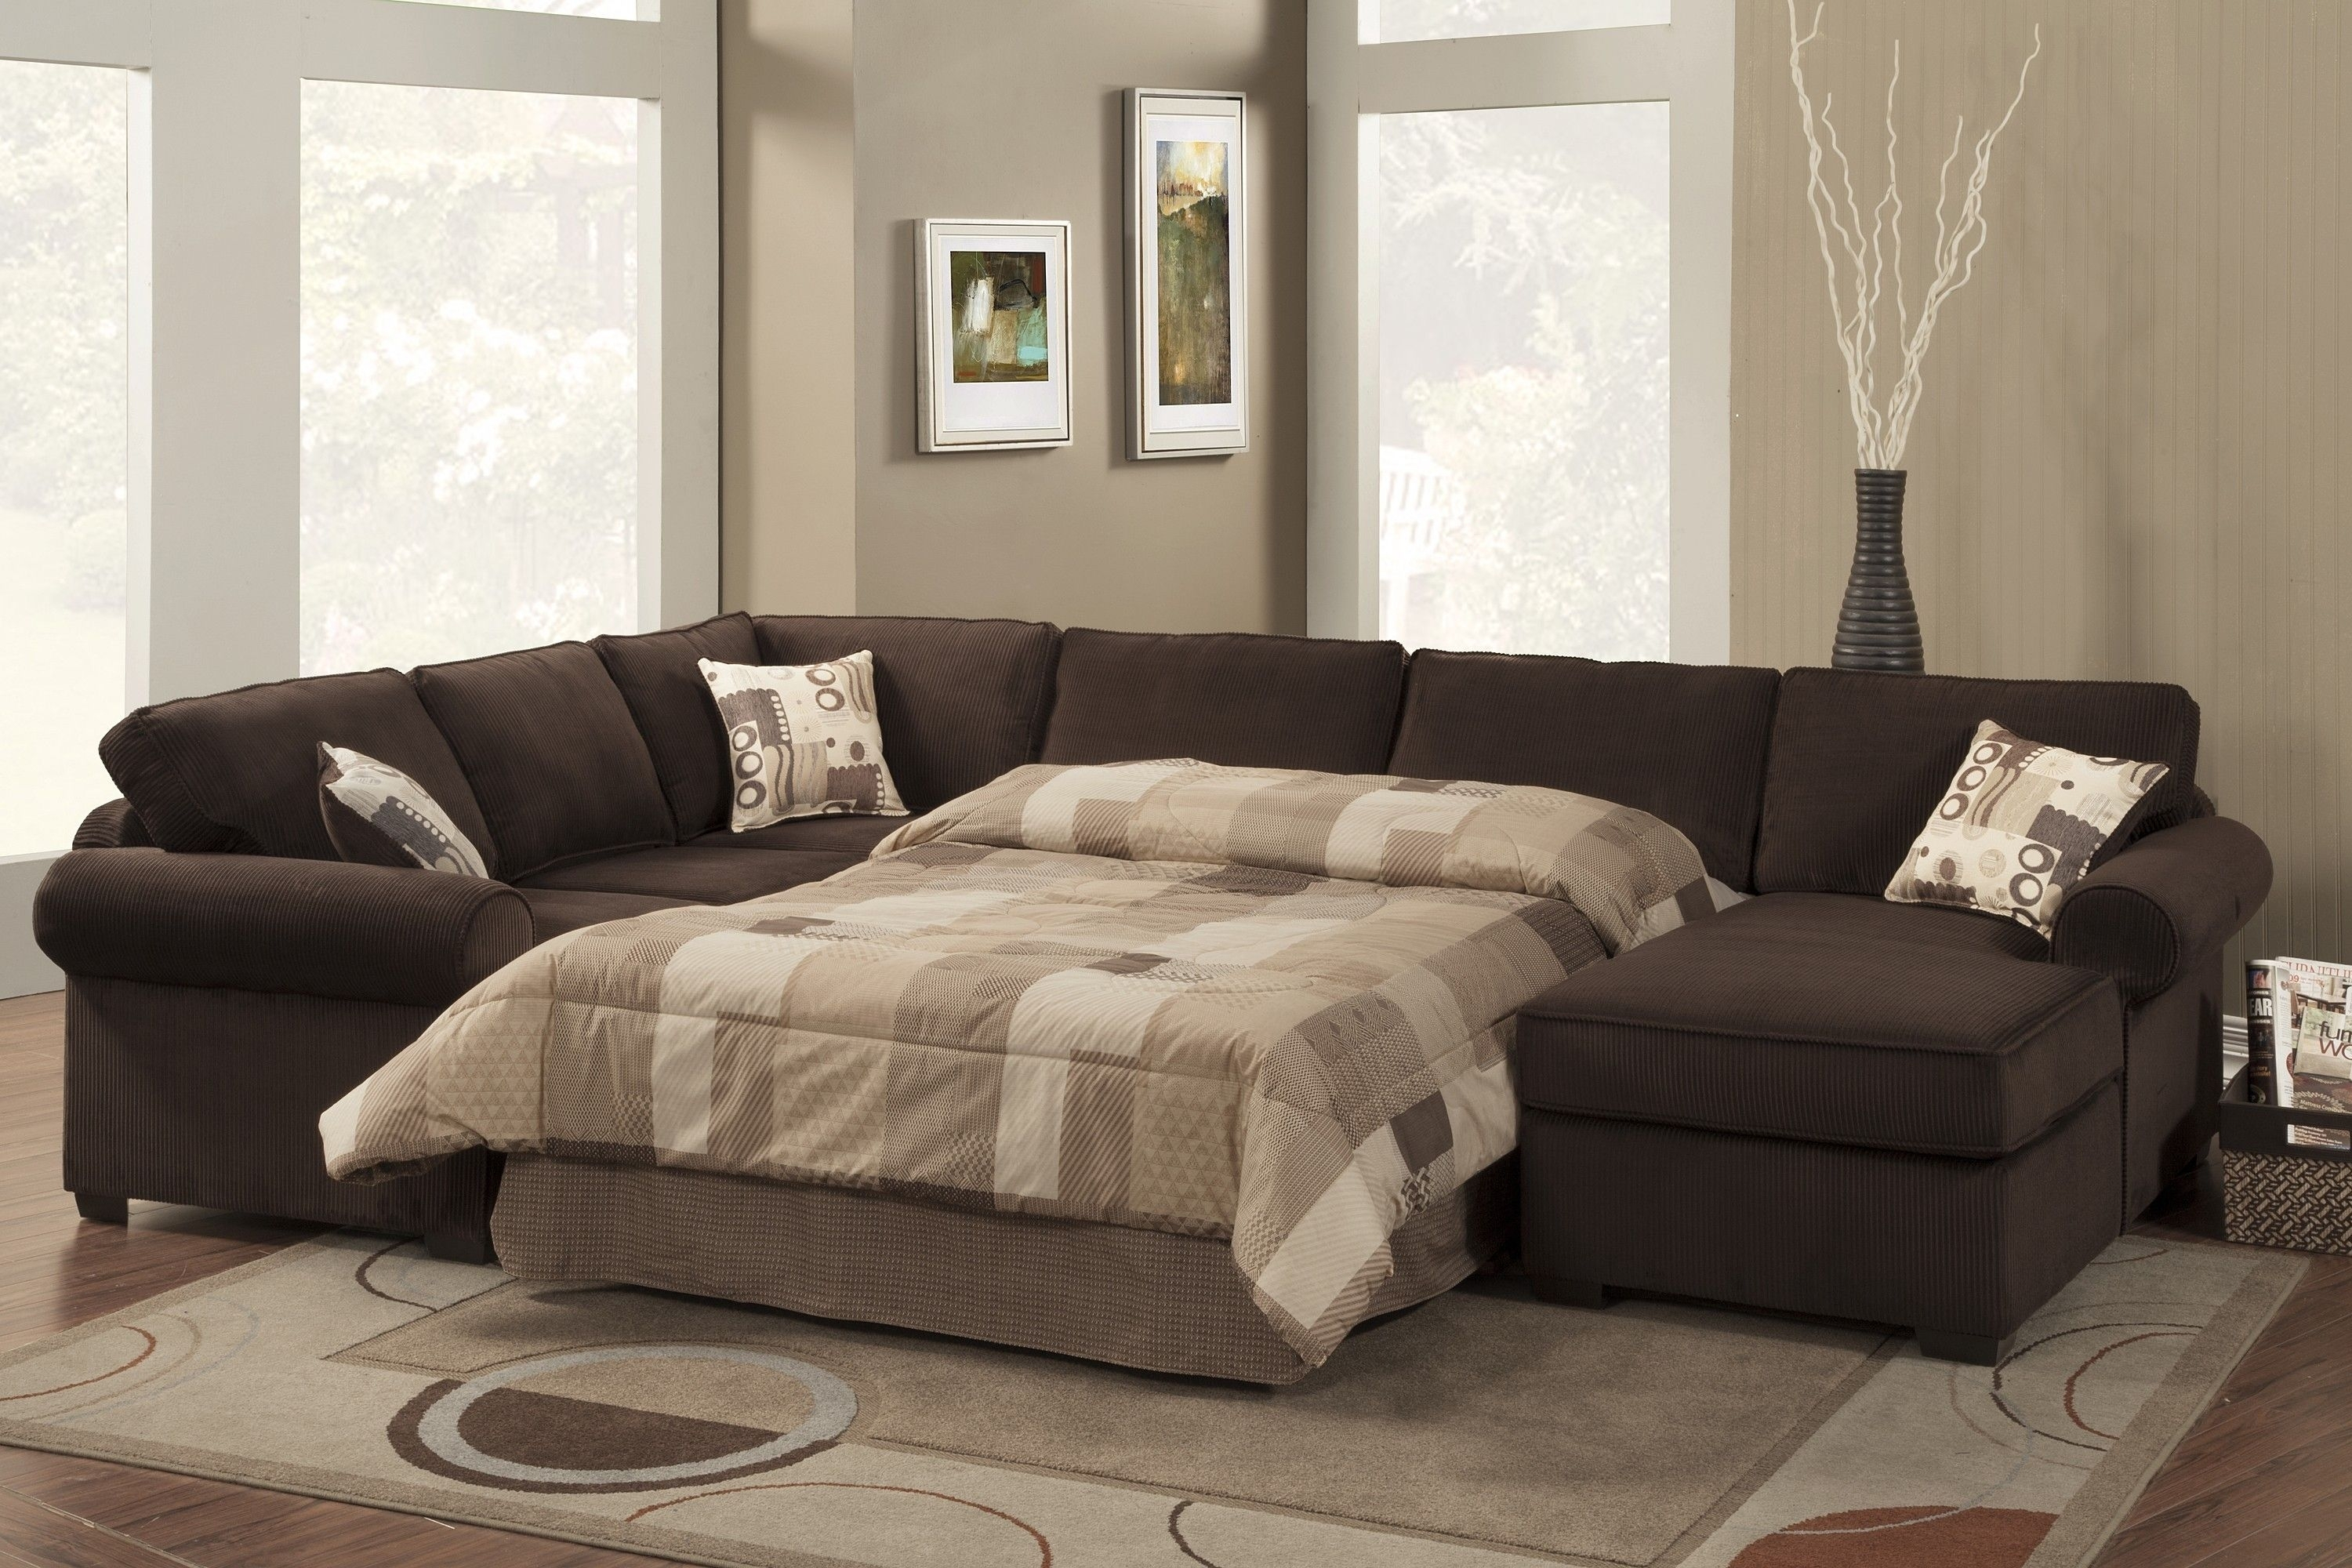 3 Piece Sectional Sofa With Sleeper | Http://ml2R | Pinterest For Sectional Sofas With Sleeper (View 1 of 10)